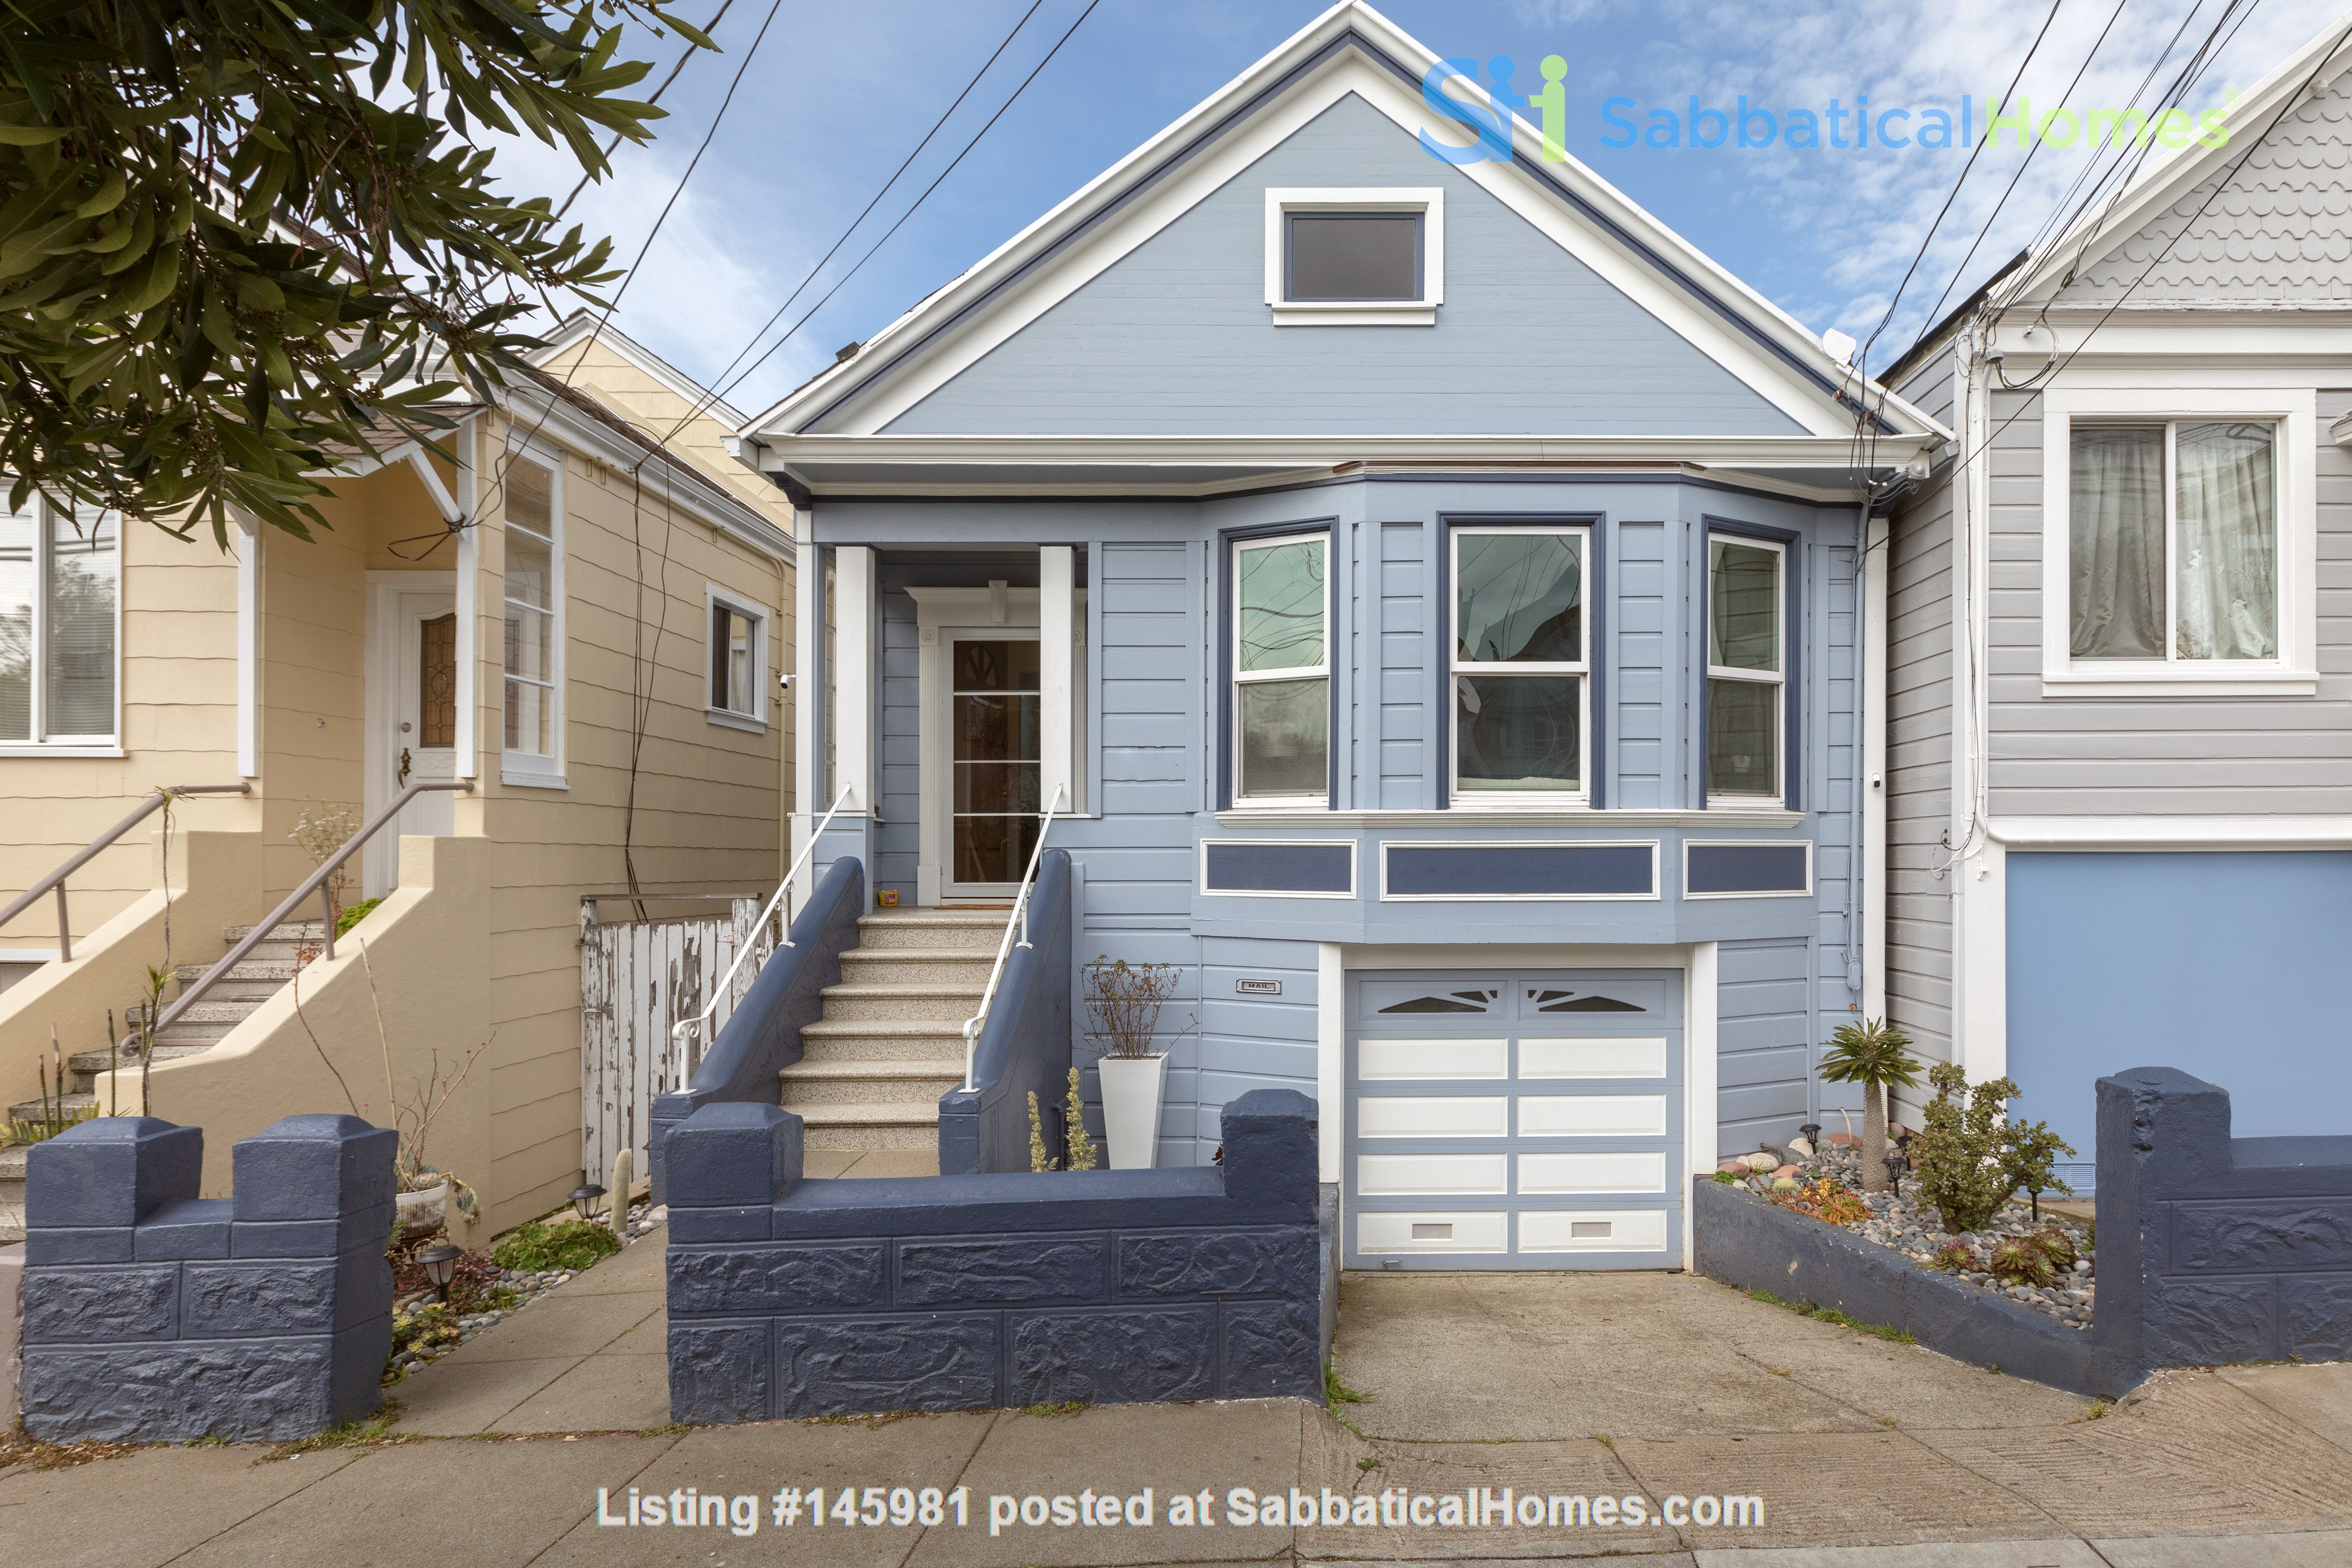 Charming Family Home in San Francisco Home Rental in SF 0